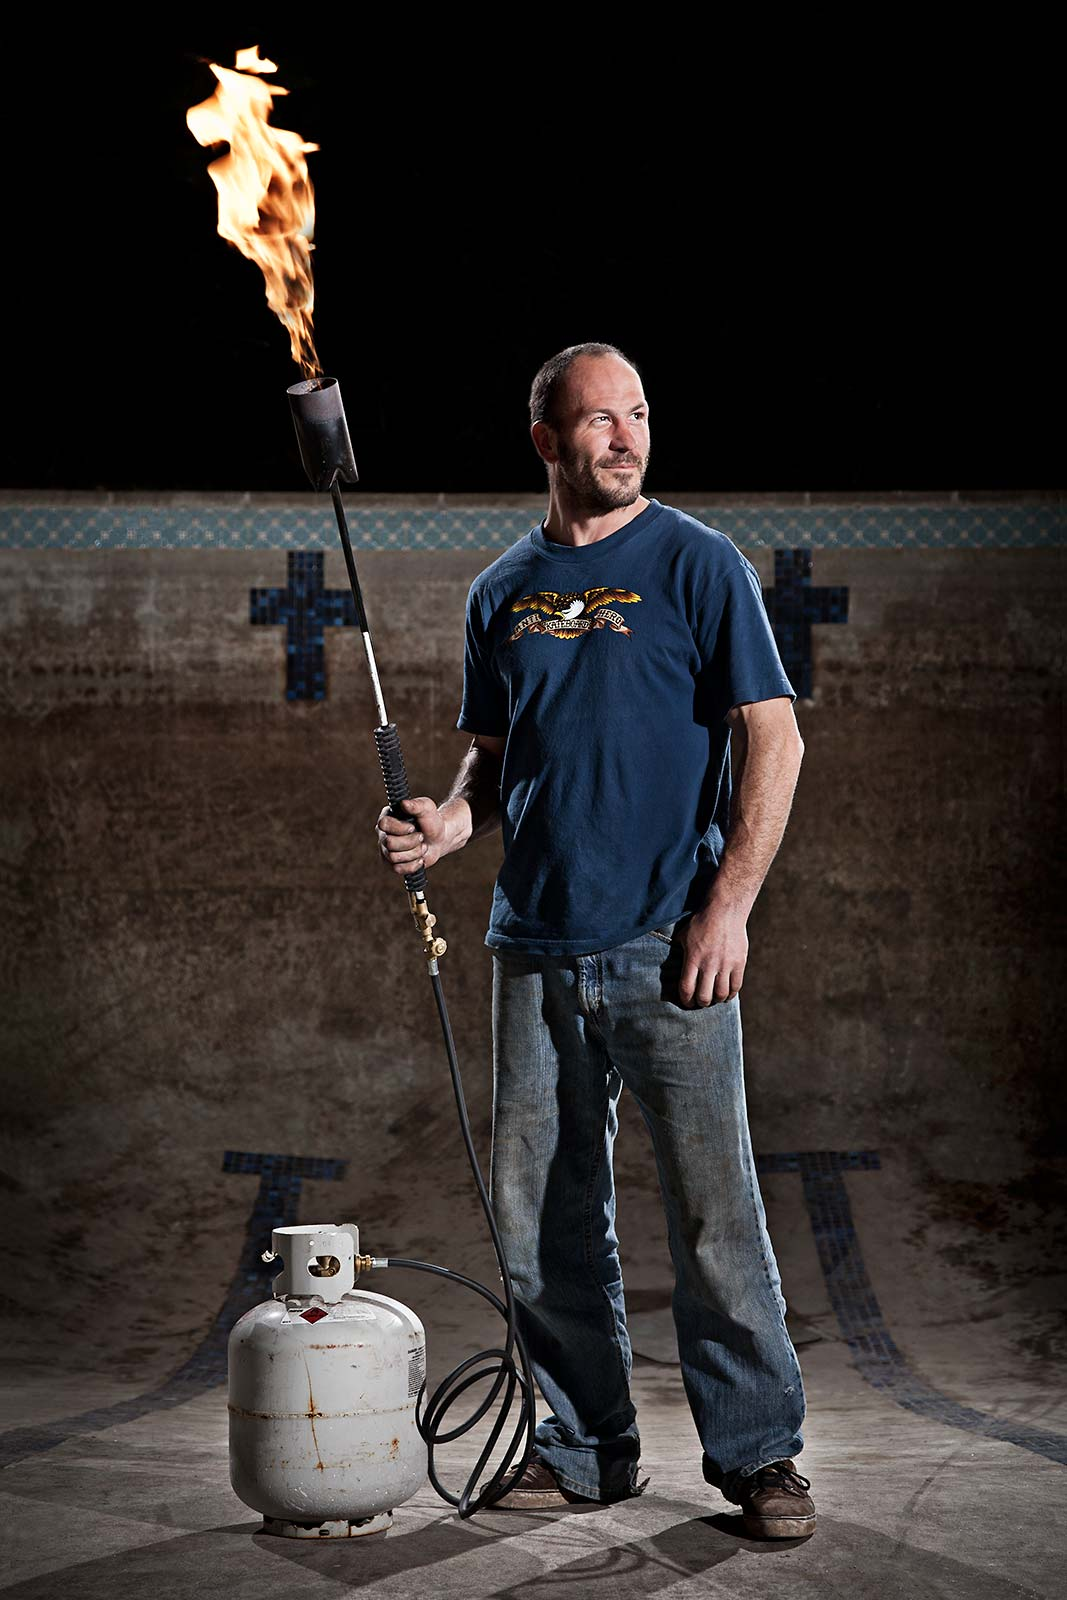 Portrait of a man wielding a torch in an empty swimming pool in Connecticut